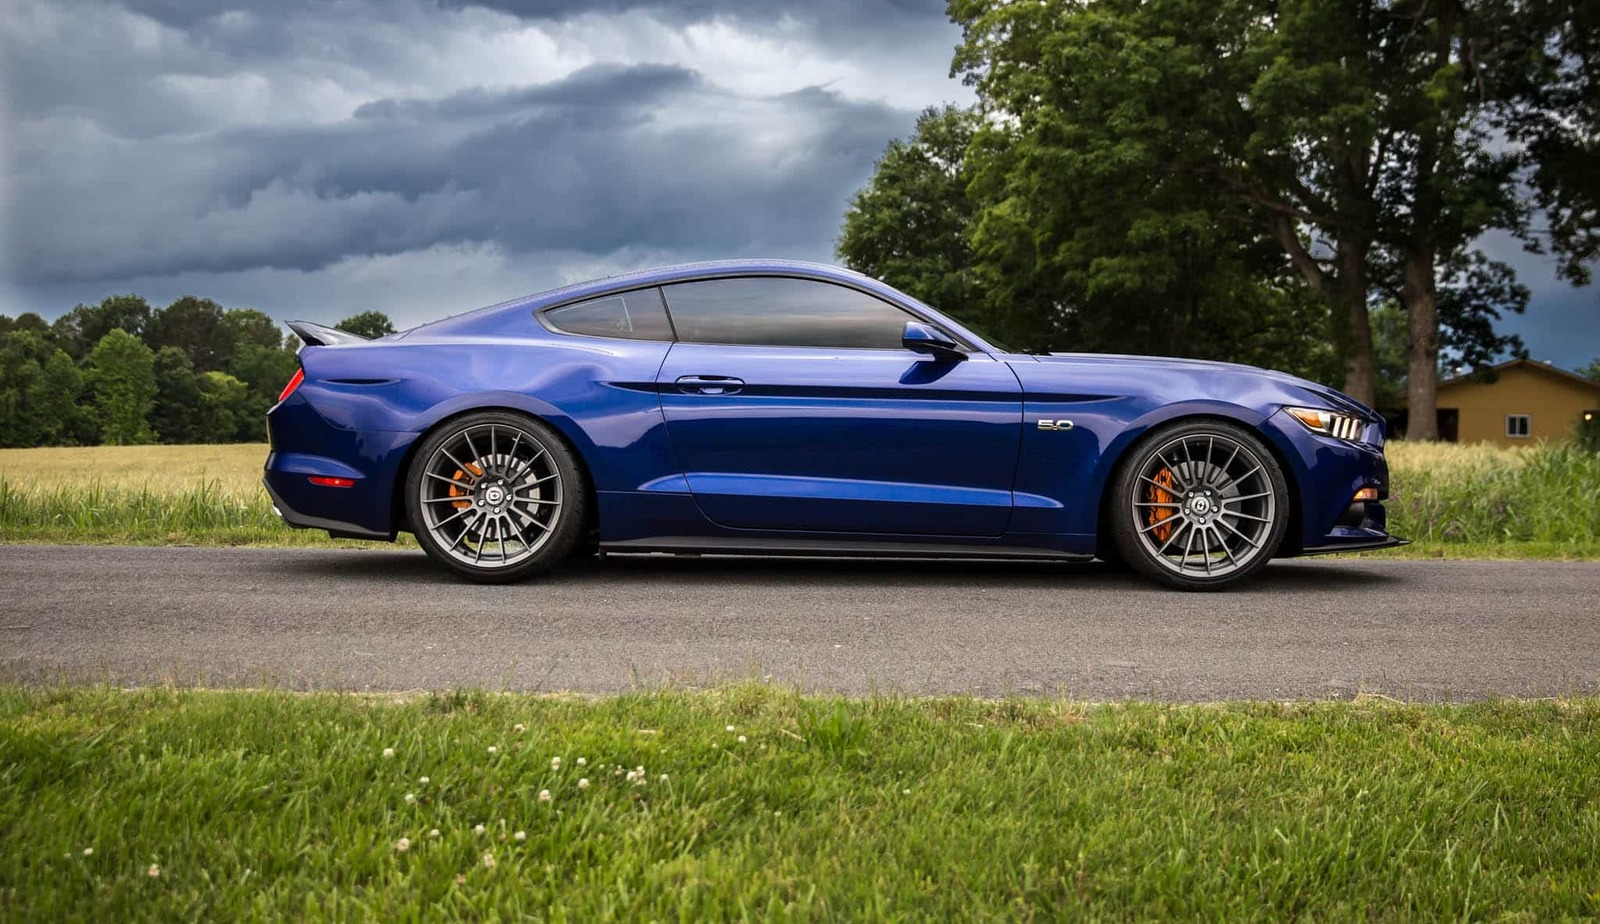 deep-impact-blue-ford-mustang-gt-s550-hre-ff15-fog-flow-formed-concave-wheels.jpg